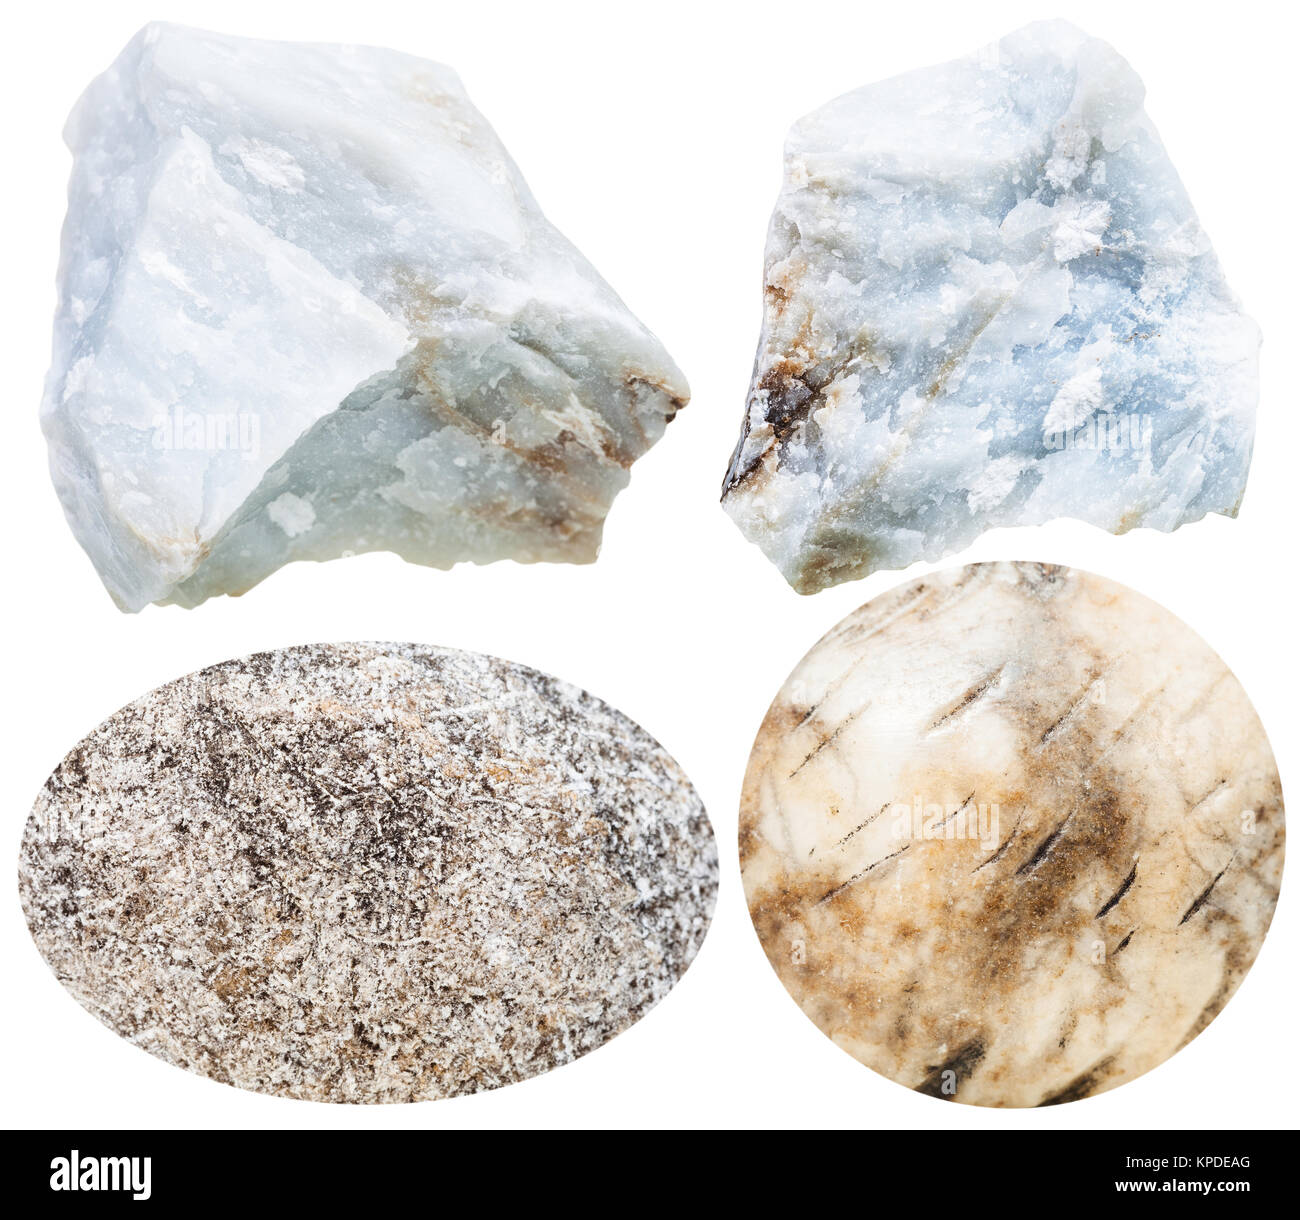 anhydrite cabochon gemstones and rocks isolated - Stock Image